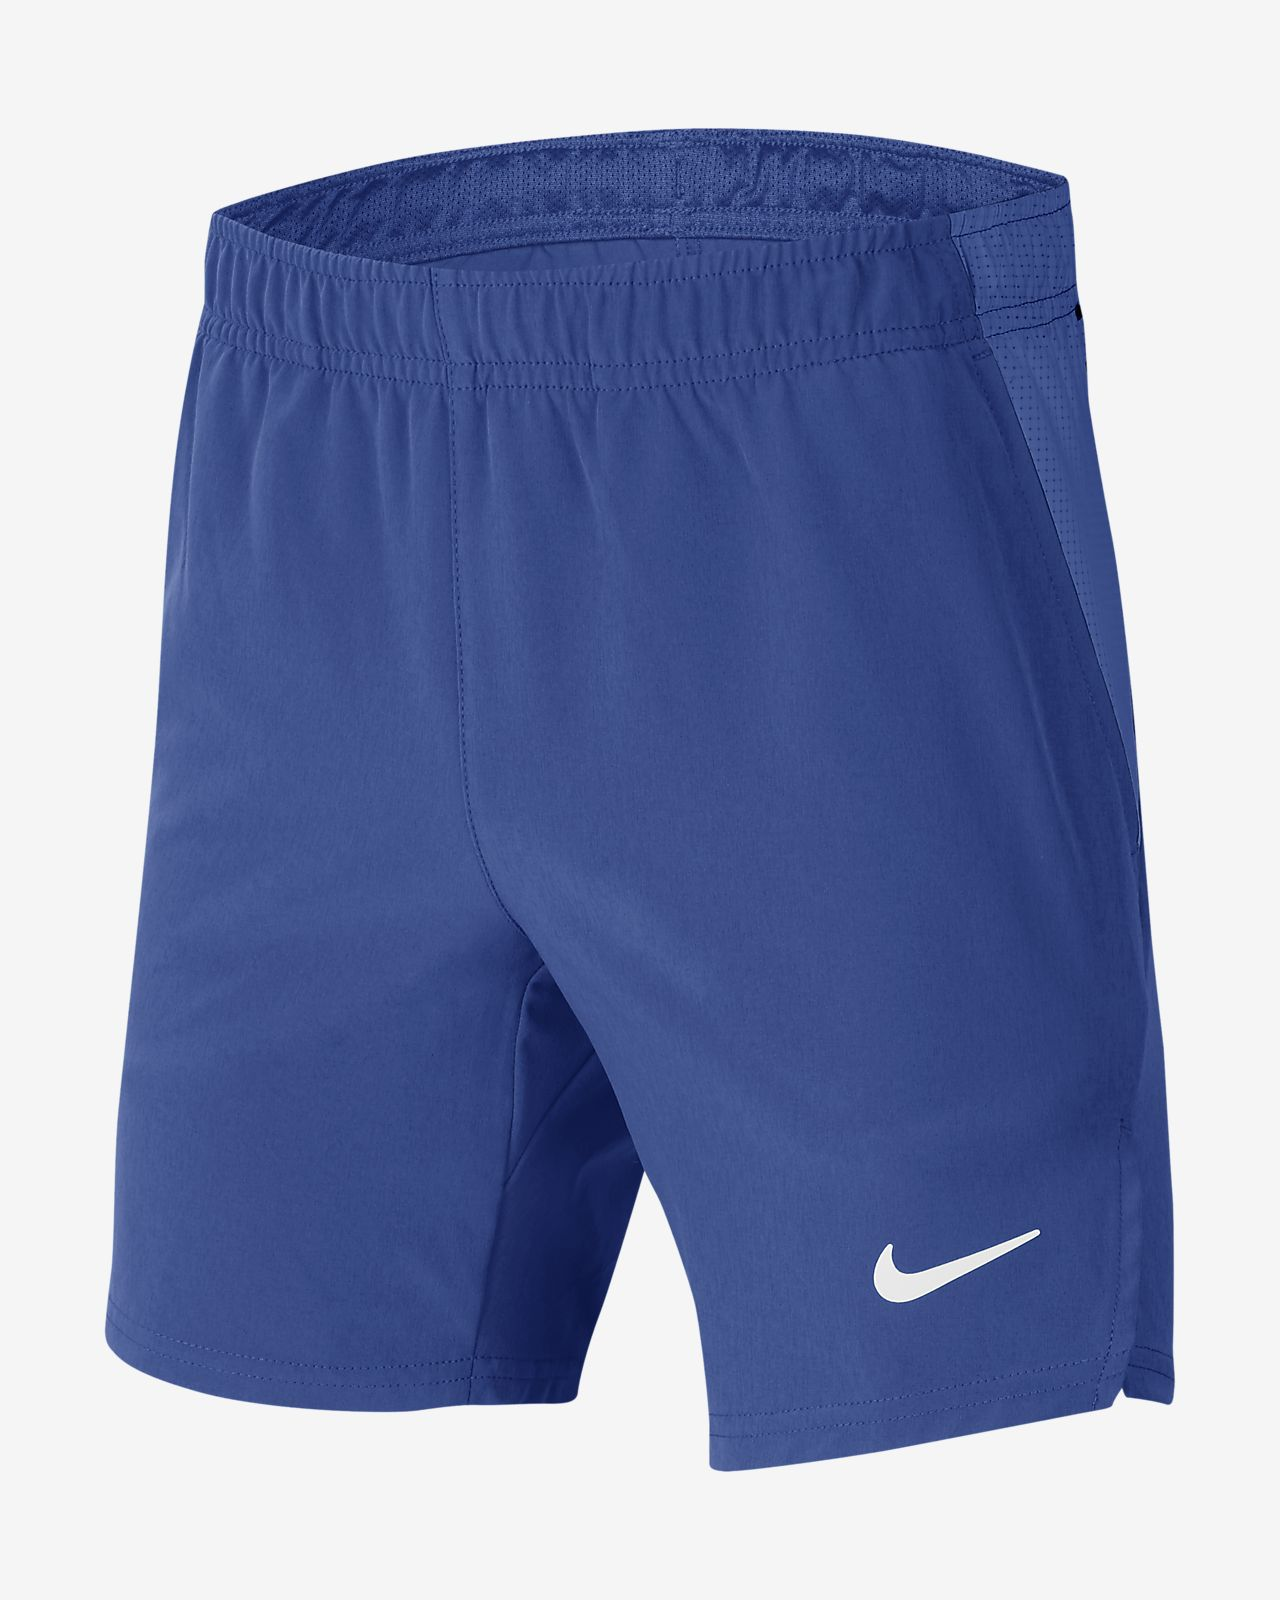 NikeCourt Flex Ace Older Kids' (Boys') Tennis Shorts